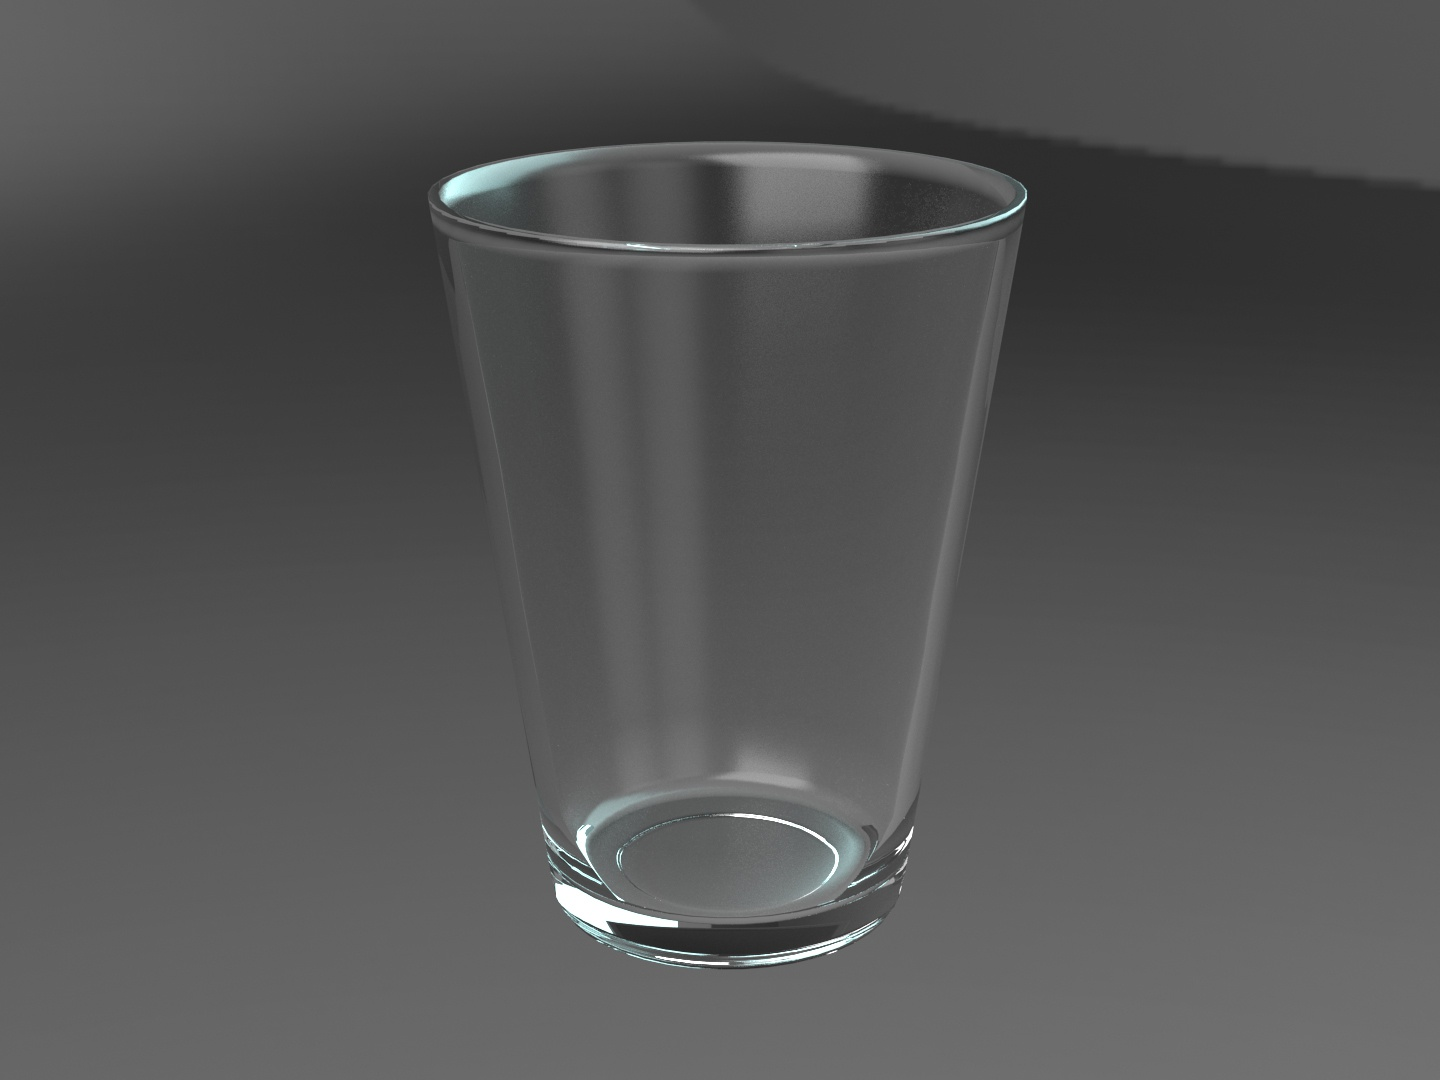 3D drinking glass liquid container kitchen accessories glasses glass fbx drinking glass drink beautiful glass 3d model 3ds 3d product design image 3dsmax 3ds max 3d design dribbble creative flat latest